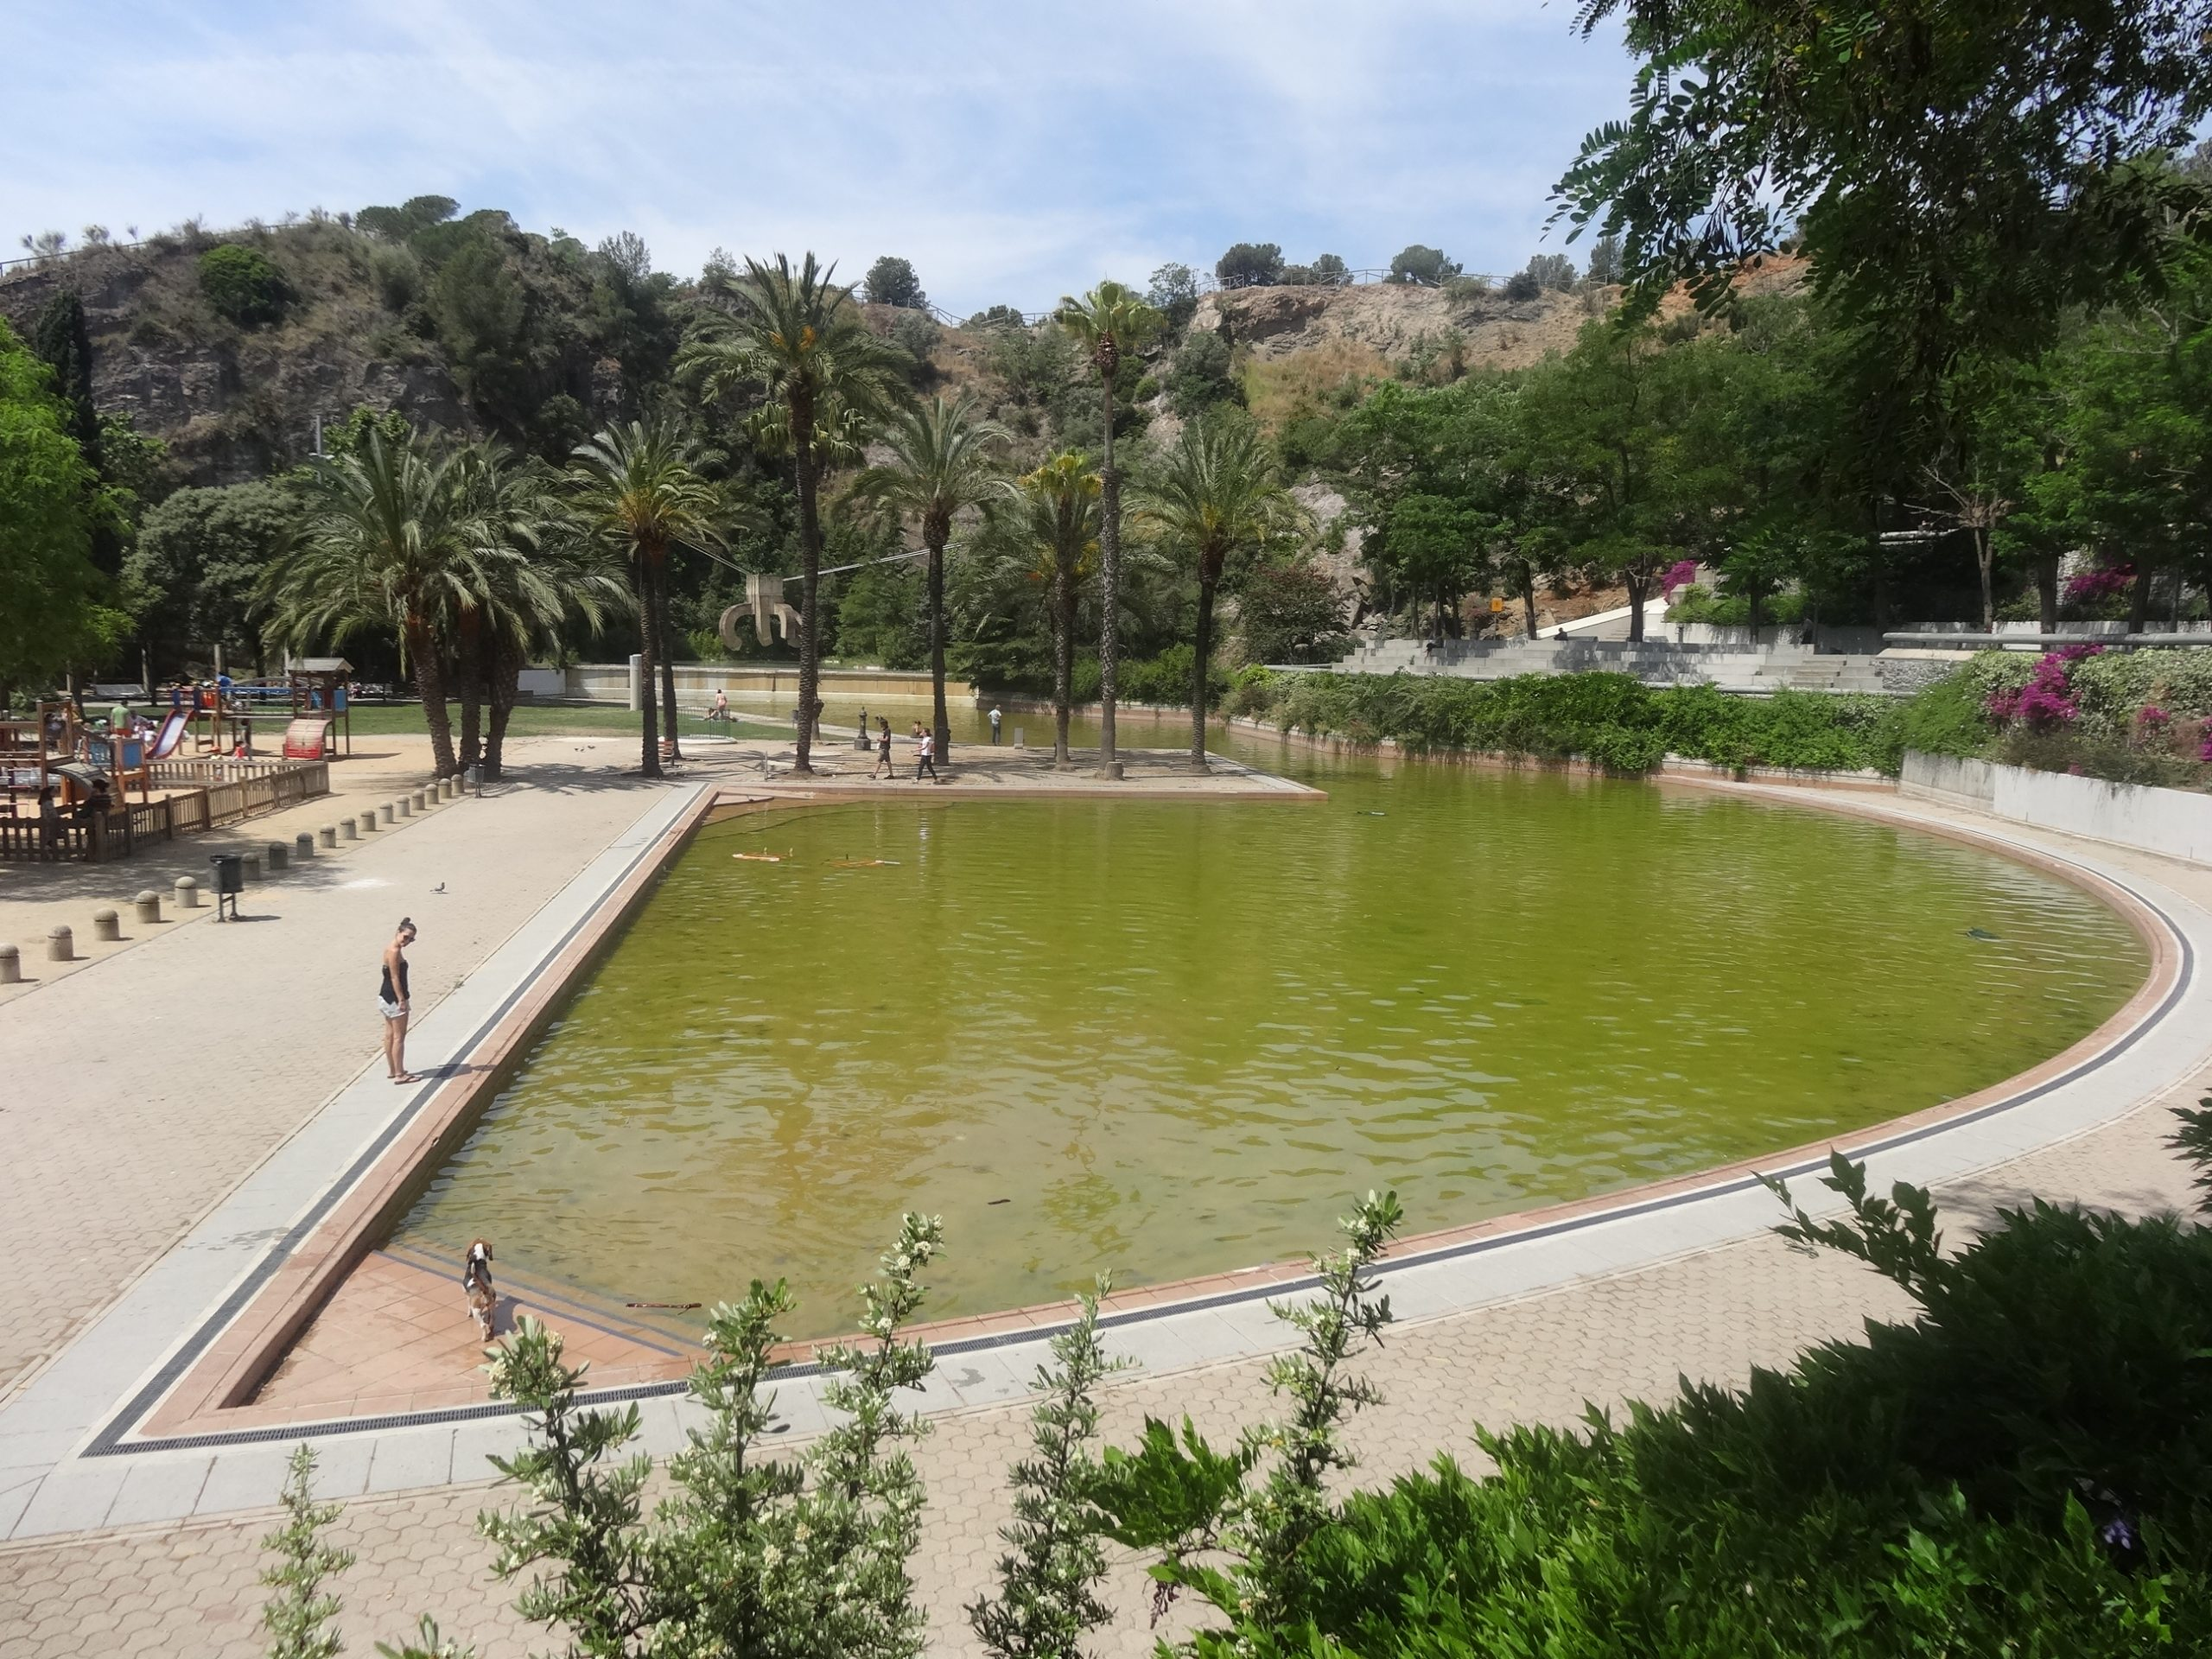 Outdoor swimming pools in Barcelona